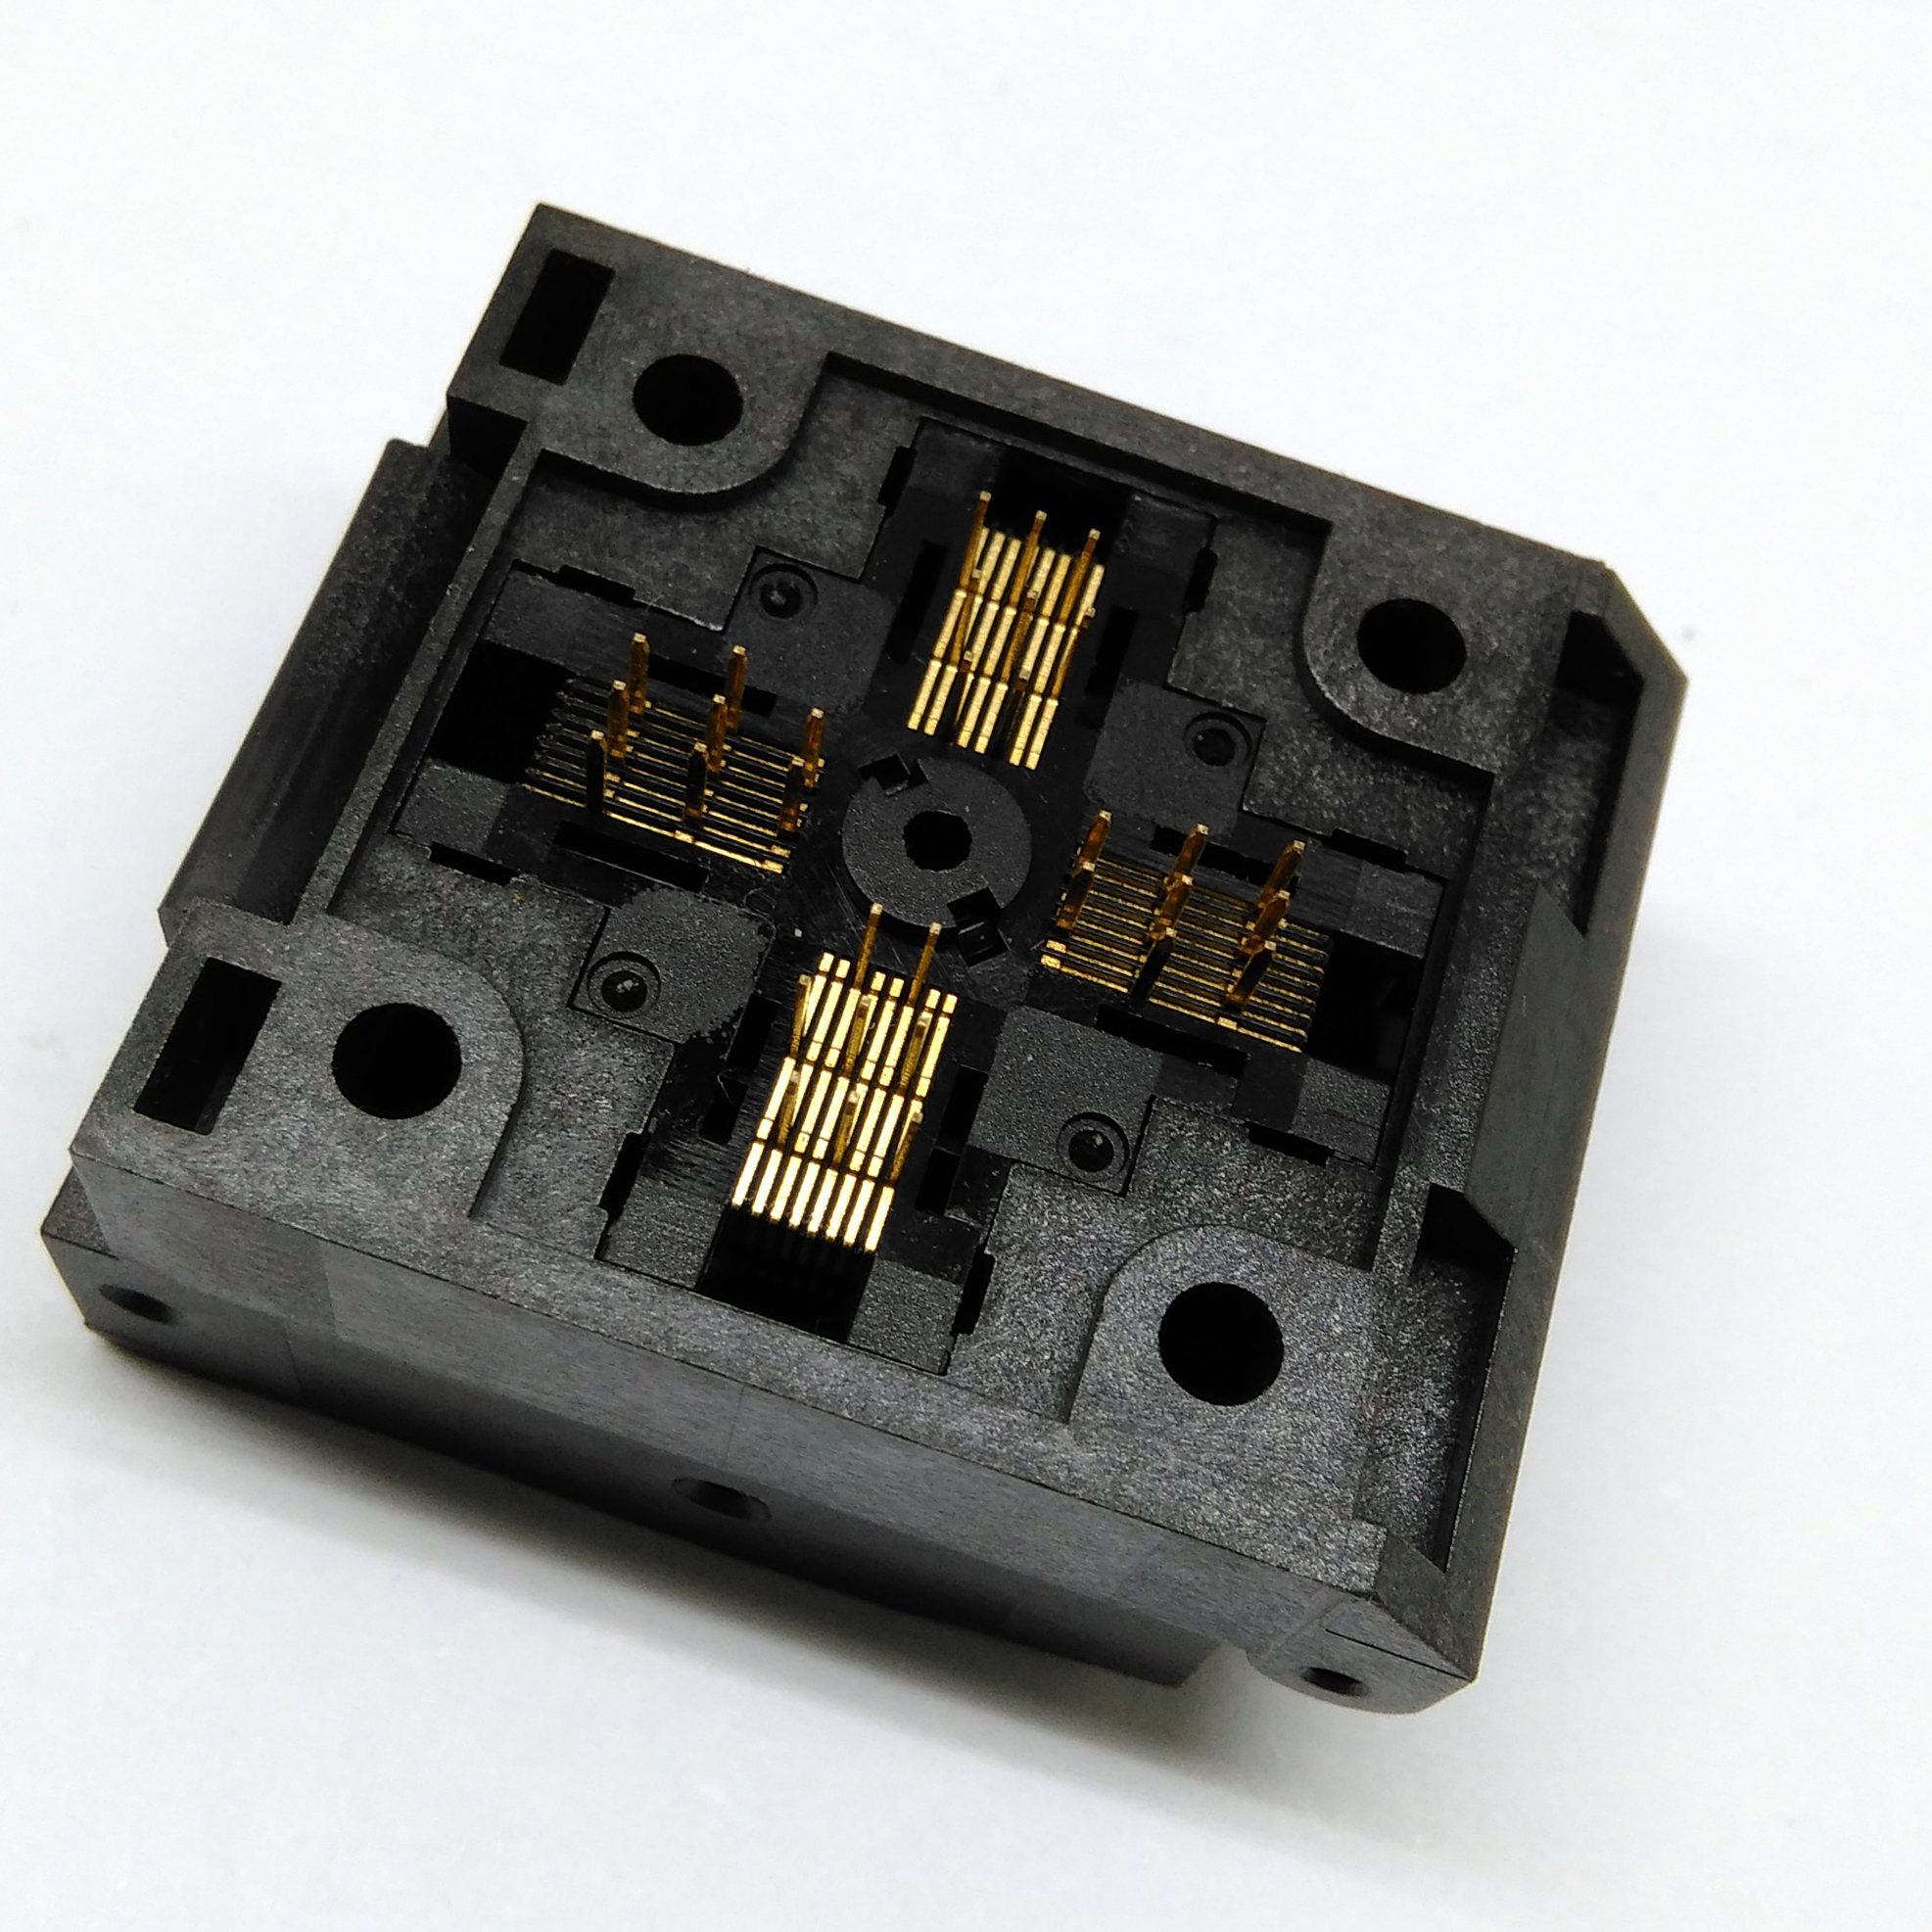 QFP32 TQFP32 LQFP32 Burn in Socket Pin Pitch 0.5mm IC Body Size 5x5mm IC51- 0324-805 Clamshell Test Socket Adapter